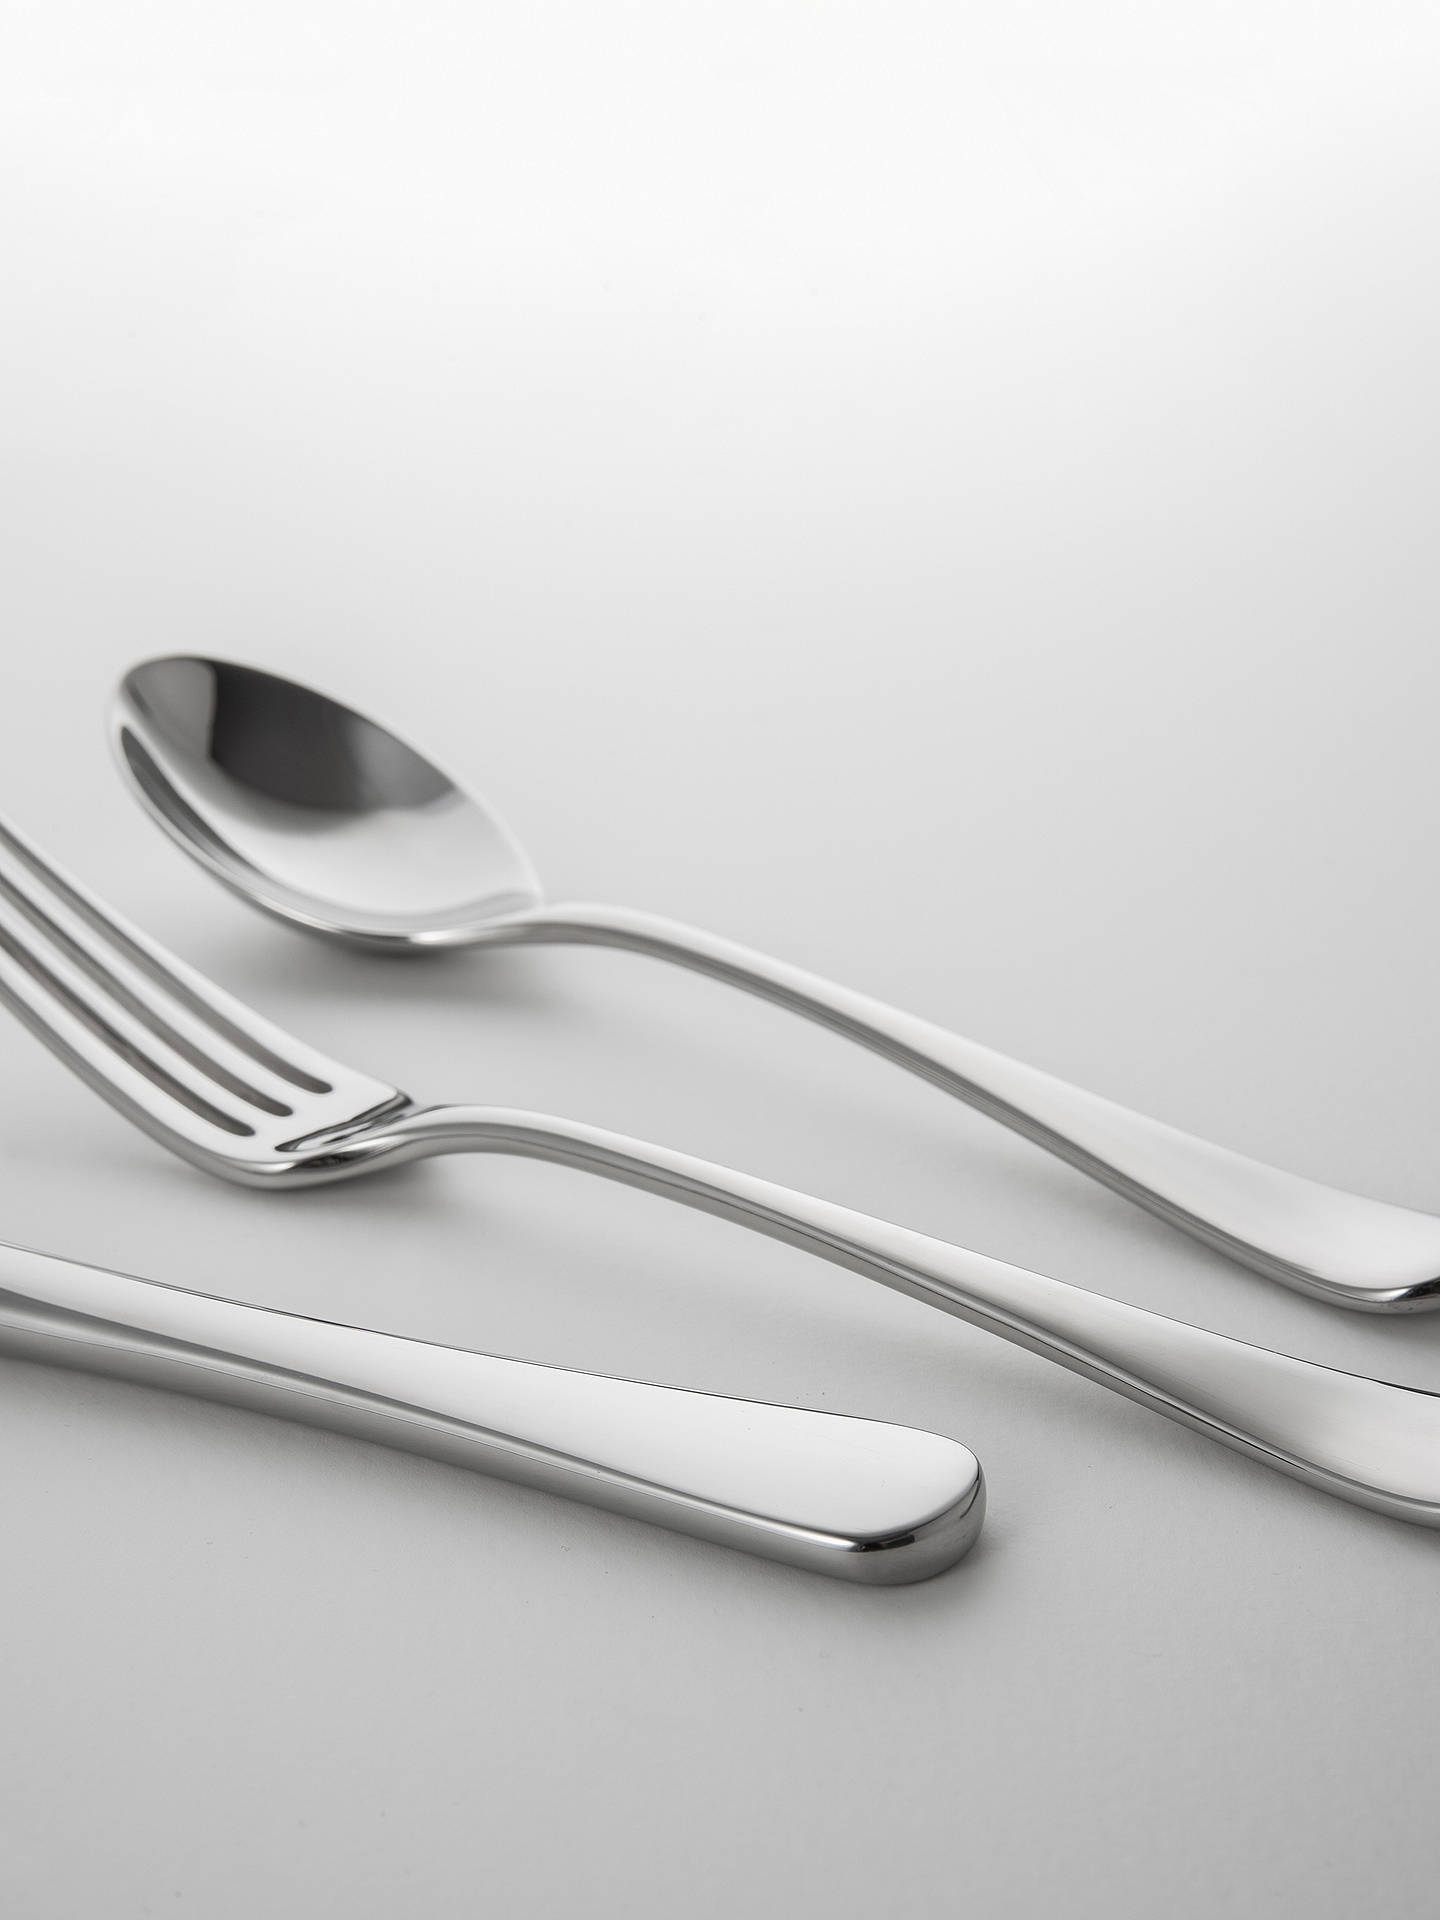 BuyRobert Welch Radford Serving Spoon Online at johnlewis.com